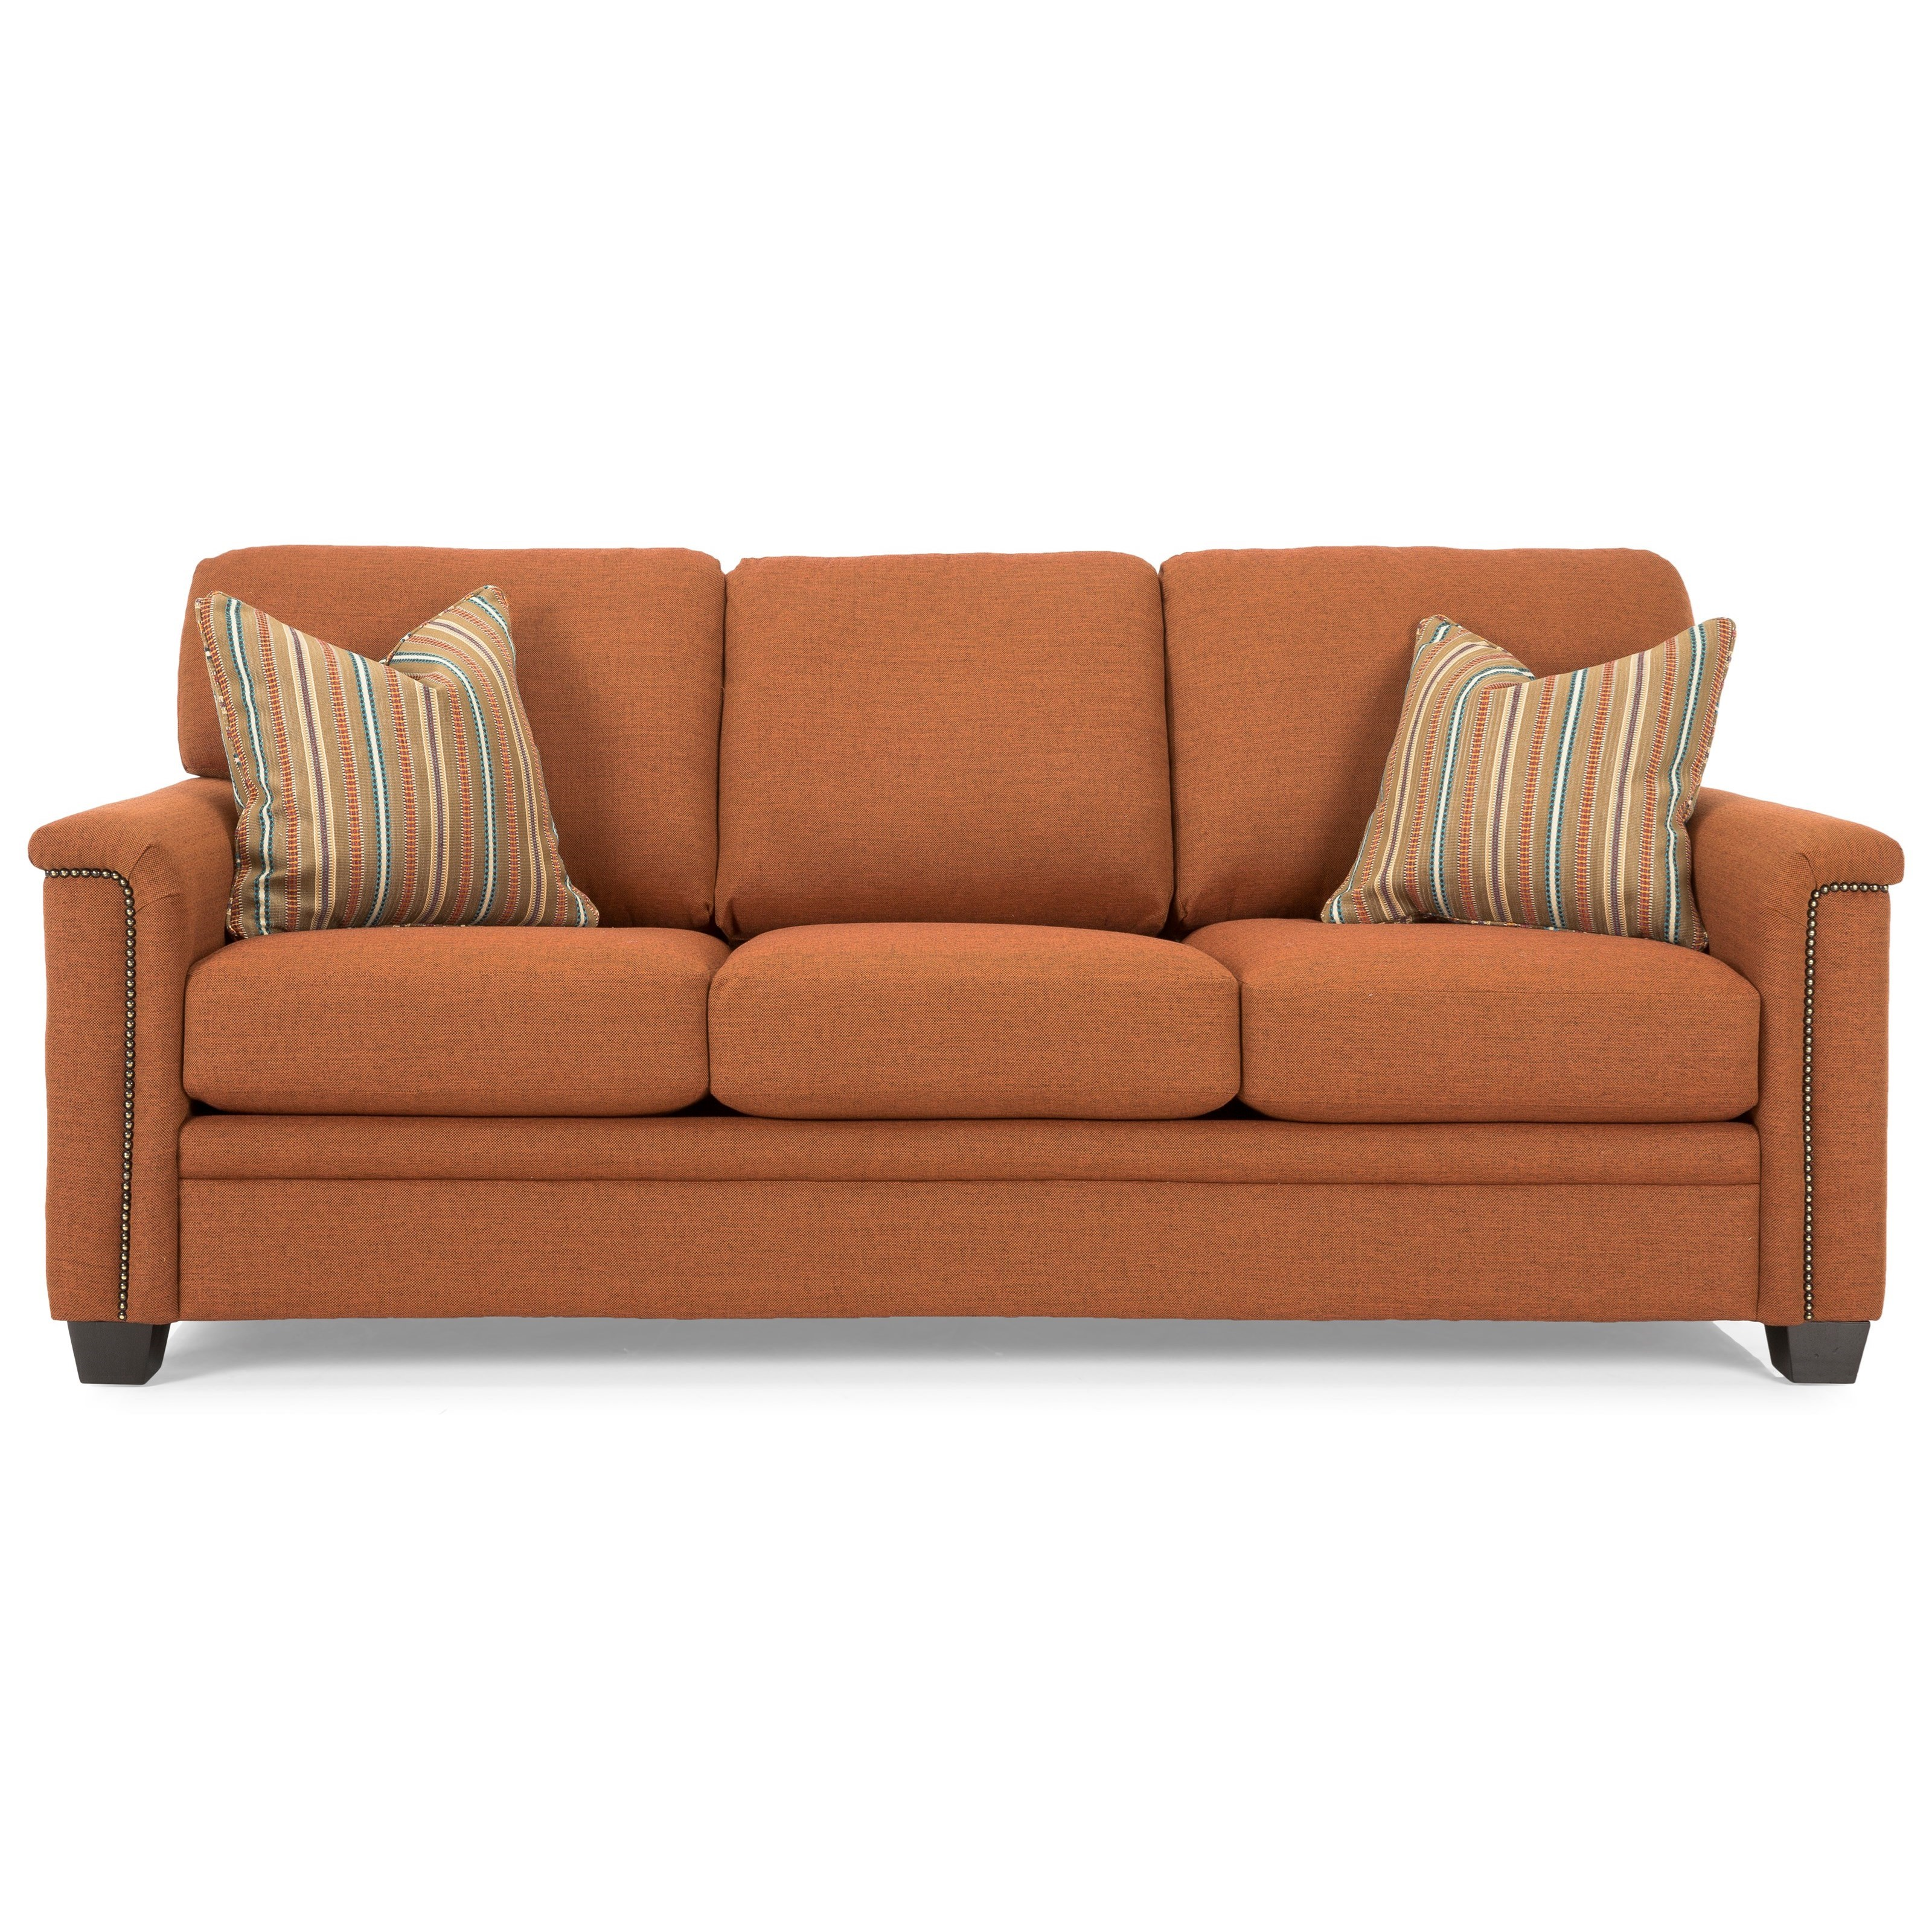 2877 Sofa by Decor-Rest at Fine Home Furnishings